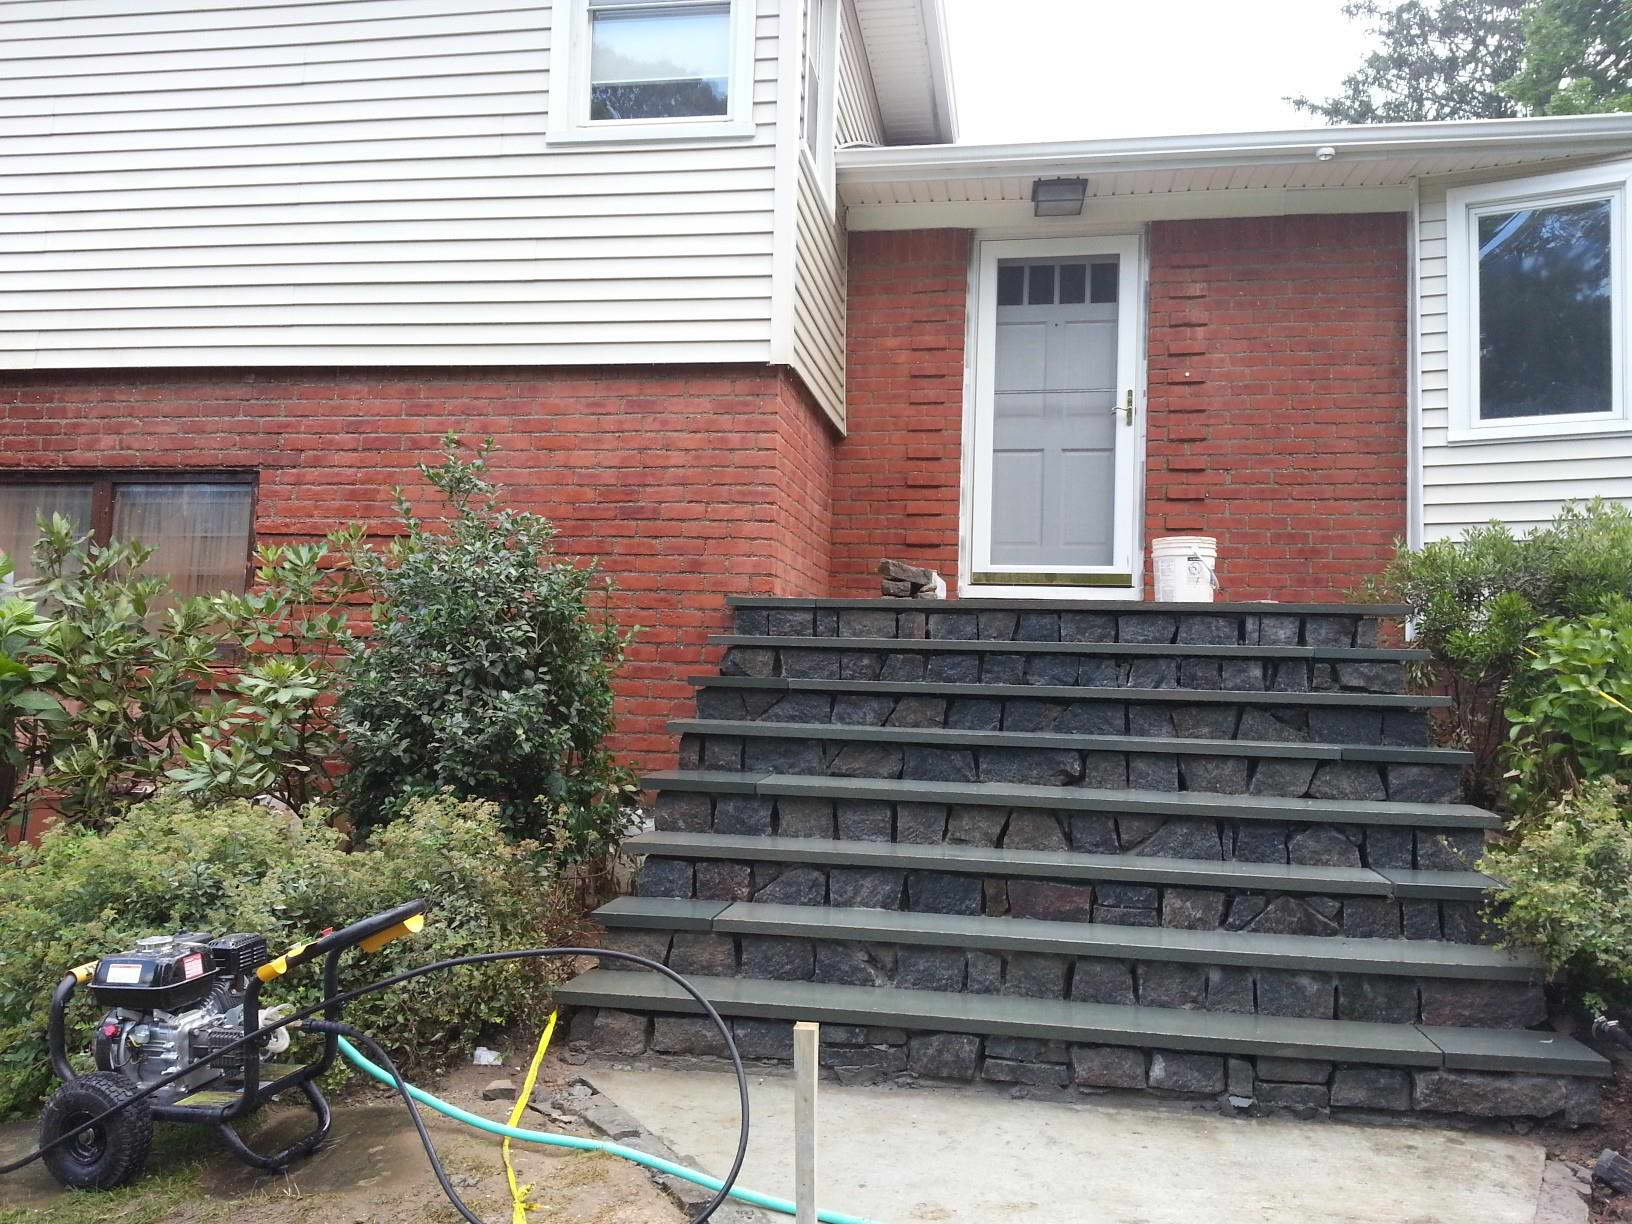 Paint removal stripping from concrete brick metal surfaces vacublast melbourne for Stripping paint from brick exterior